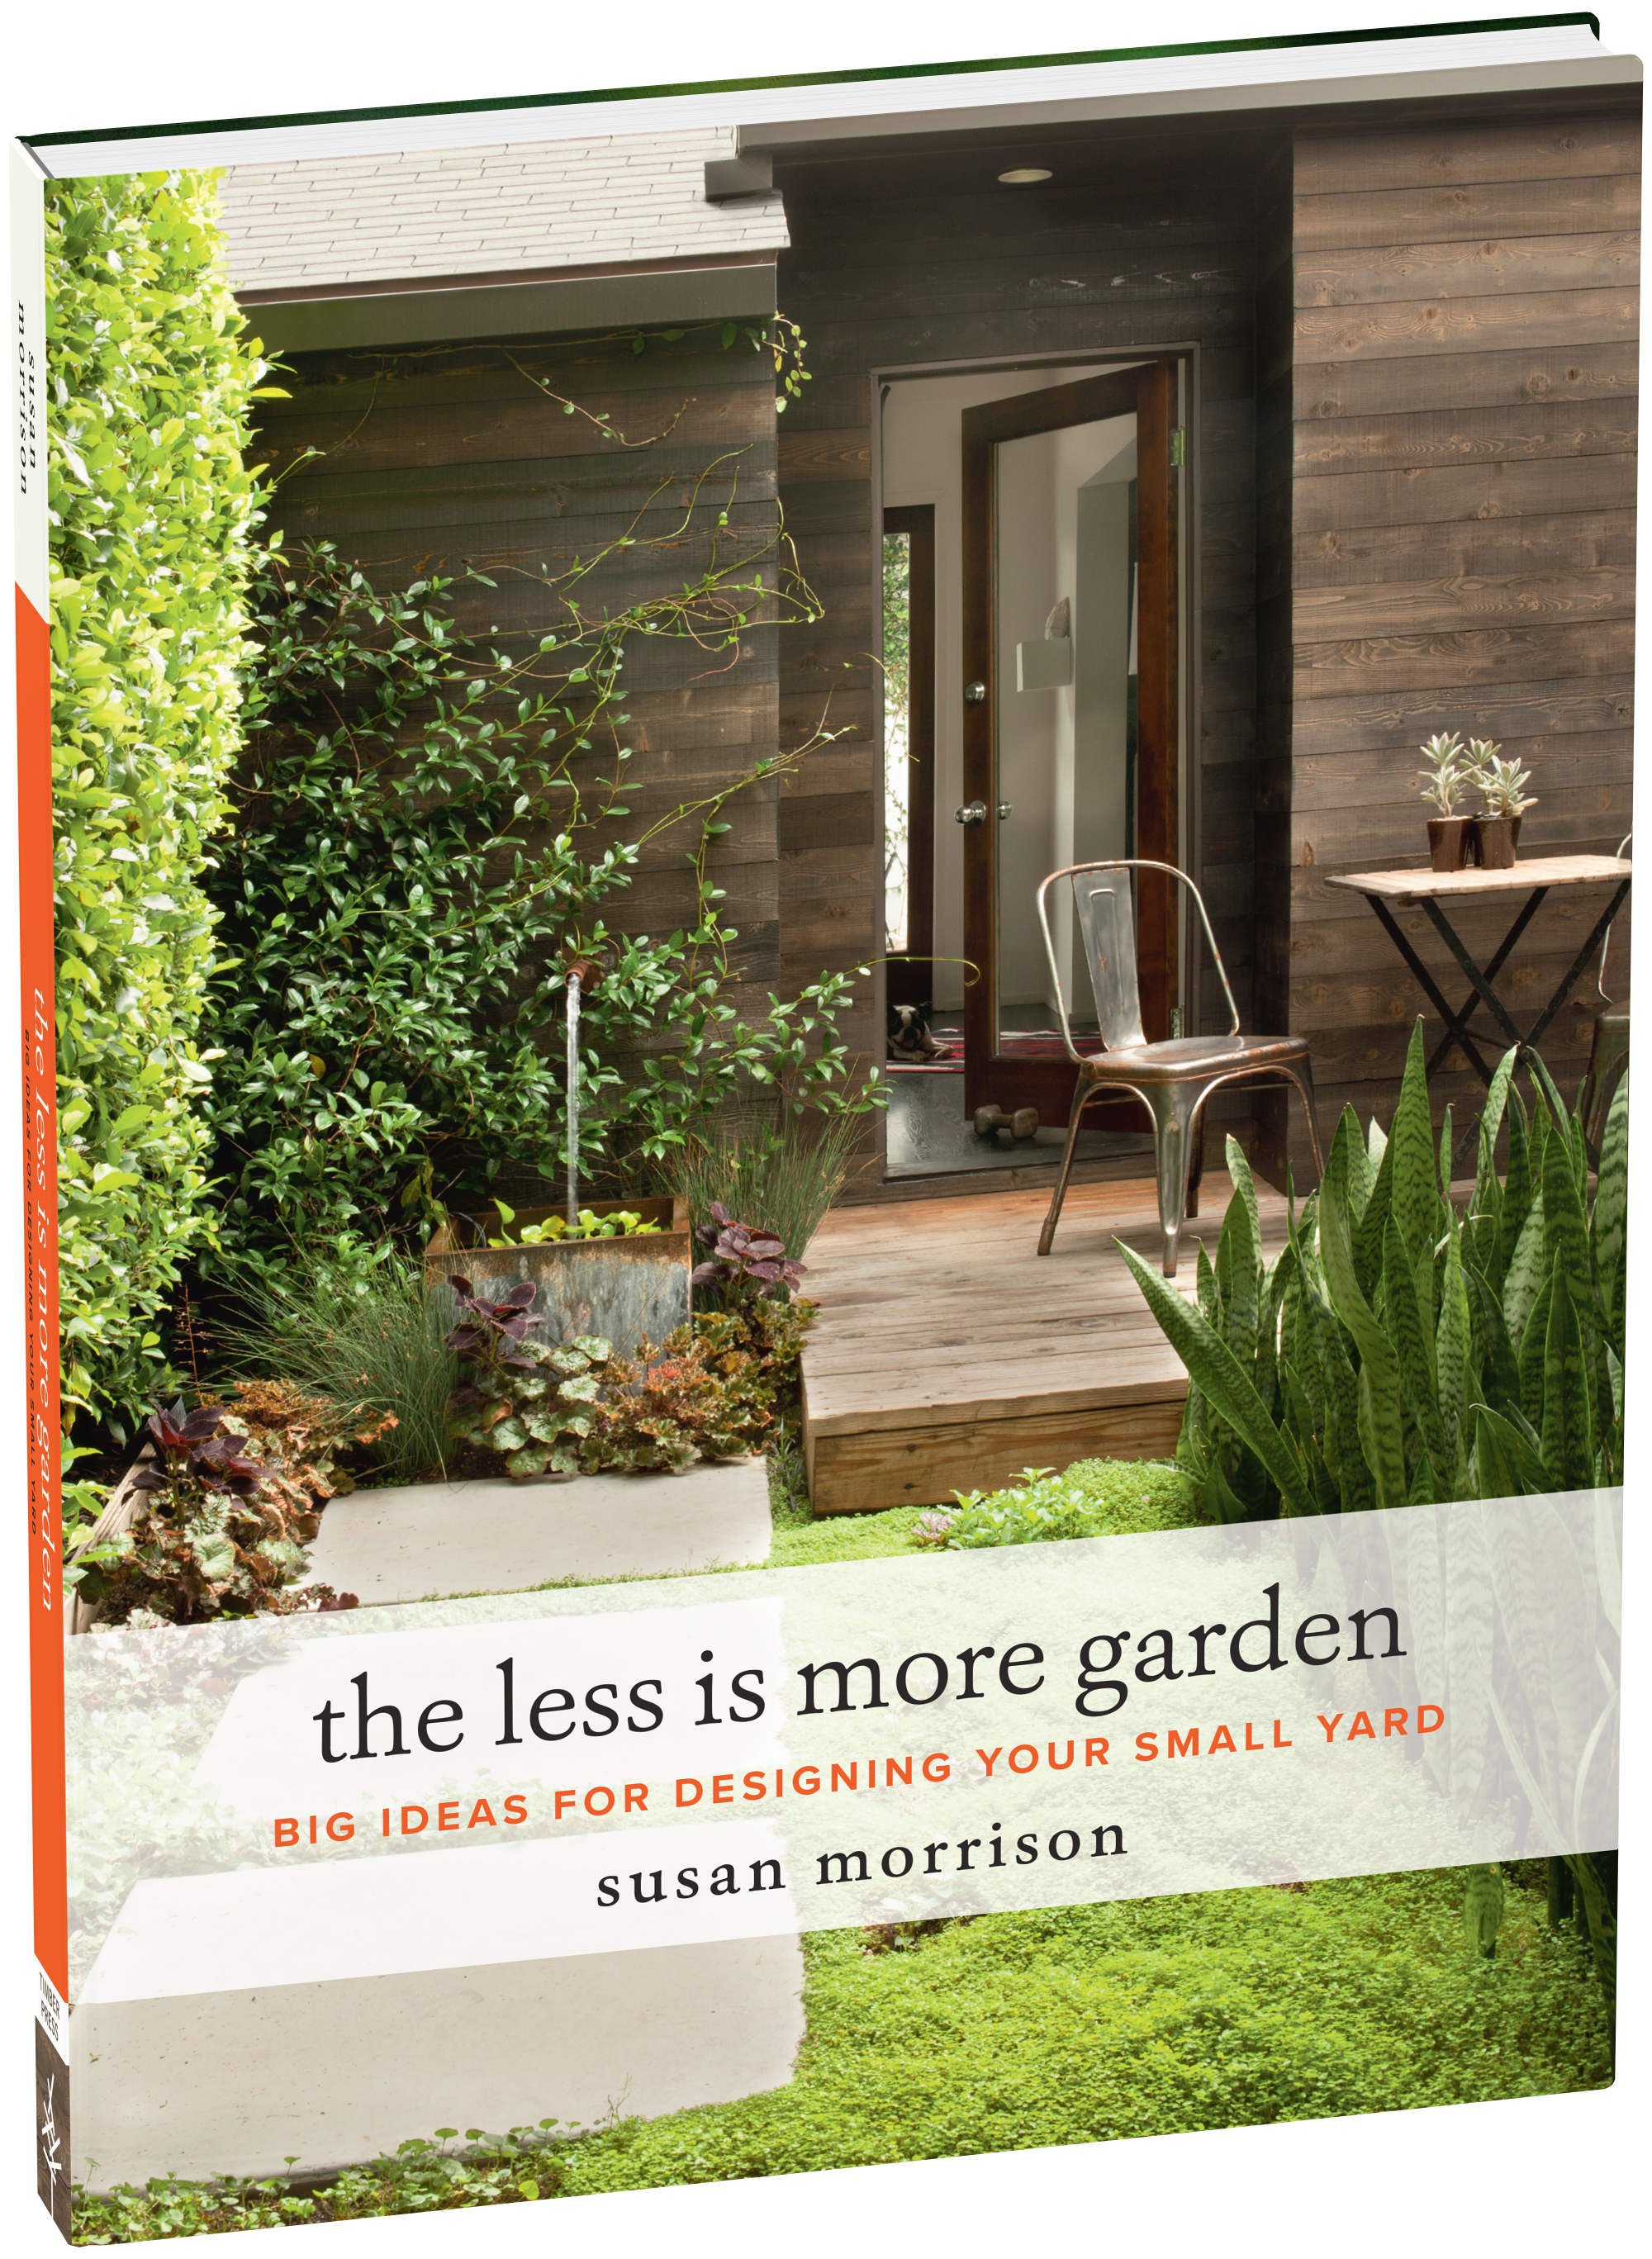 The Less Is More Garden - Workman Publishing